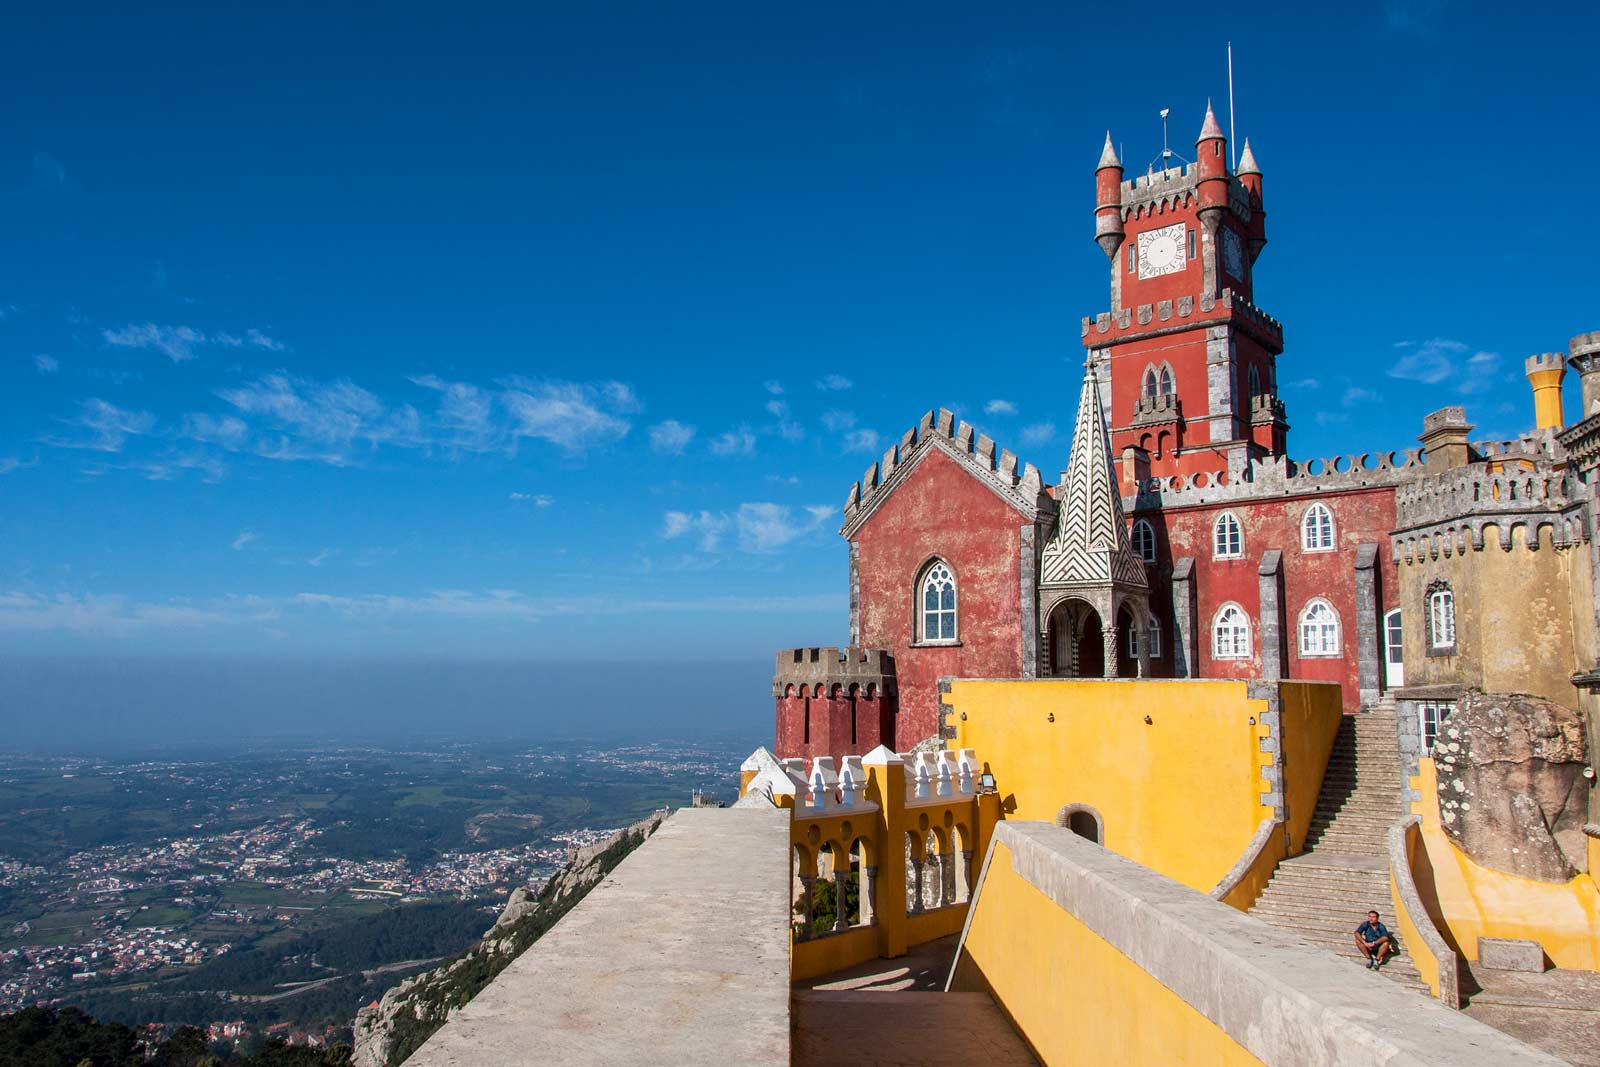 Palace of Pena near Sintra